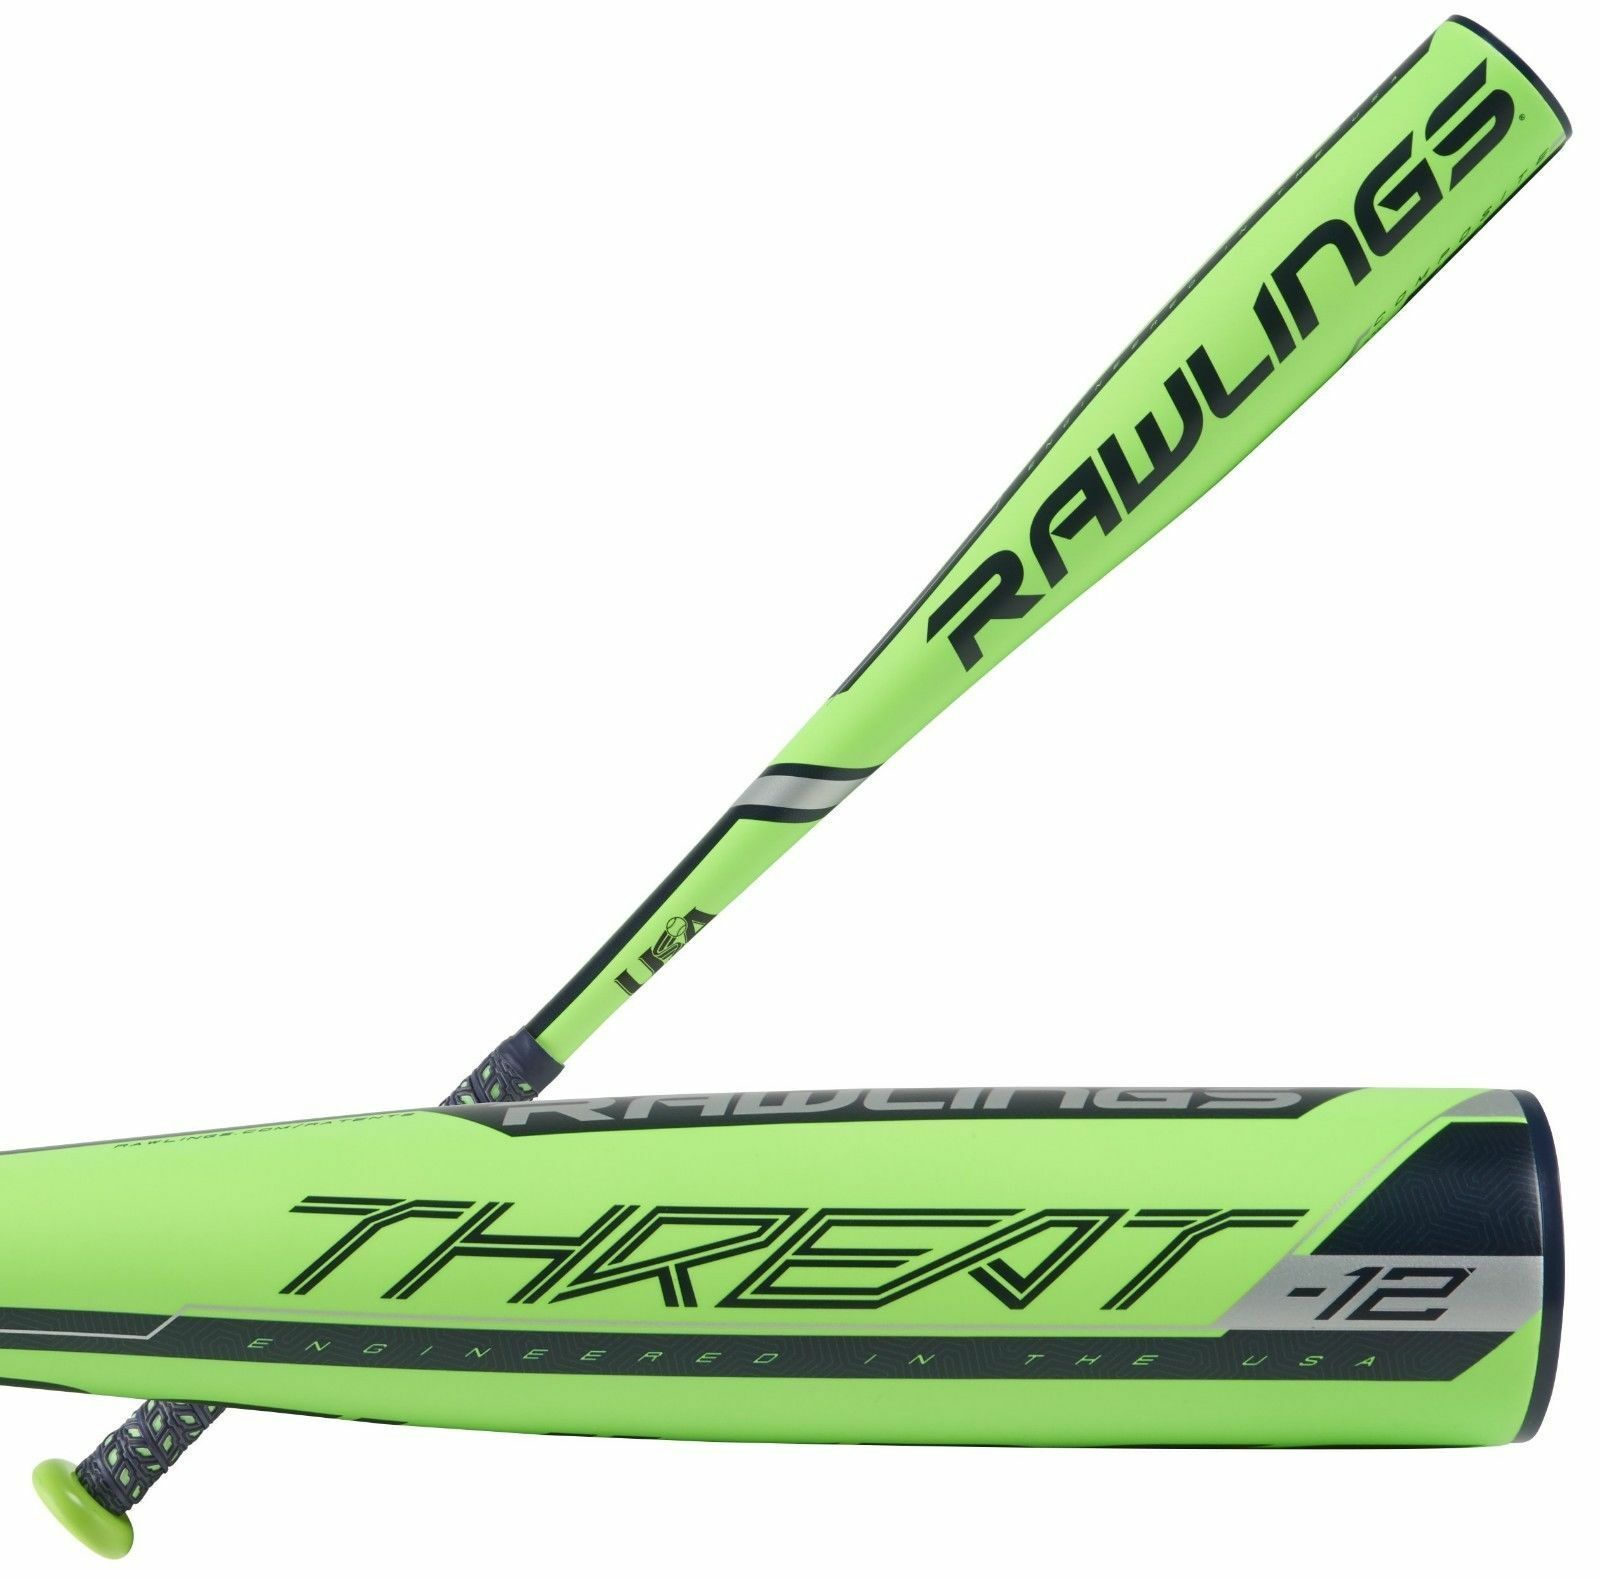 2019 Rawlings Threat -12 2 5/8